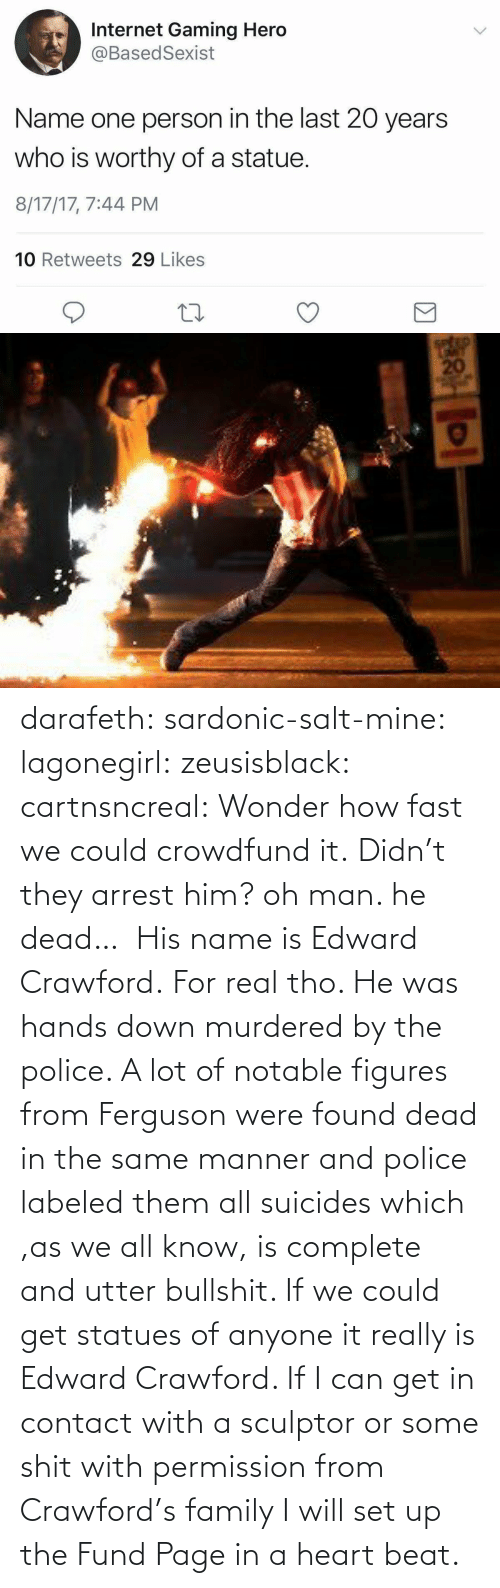 Family, Police, and Tumblr: darafeth: sardonic-salt-mine:  lagonegirl:  zeusisblack:  cartnsncreal:   Wonder how fast we could crowdfund it.    Didn't they arrest him?  oh man. he dead…  His name is Edward Crawford.   For real tho. He was hands down murdered by the police. A lot of notable figures from Ferguson were found dead in the same manner and police labeled them all suicides which ,as we all know, is complete and utter bullshit.  If we could get statues of anyone it really is Edward Crawford. If I can get in contact with a sculptor or some shit with permission from Crawford's family I will set up the Fund Page in a heart beat.